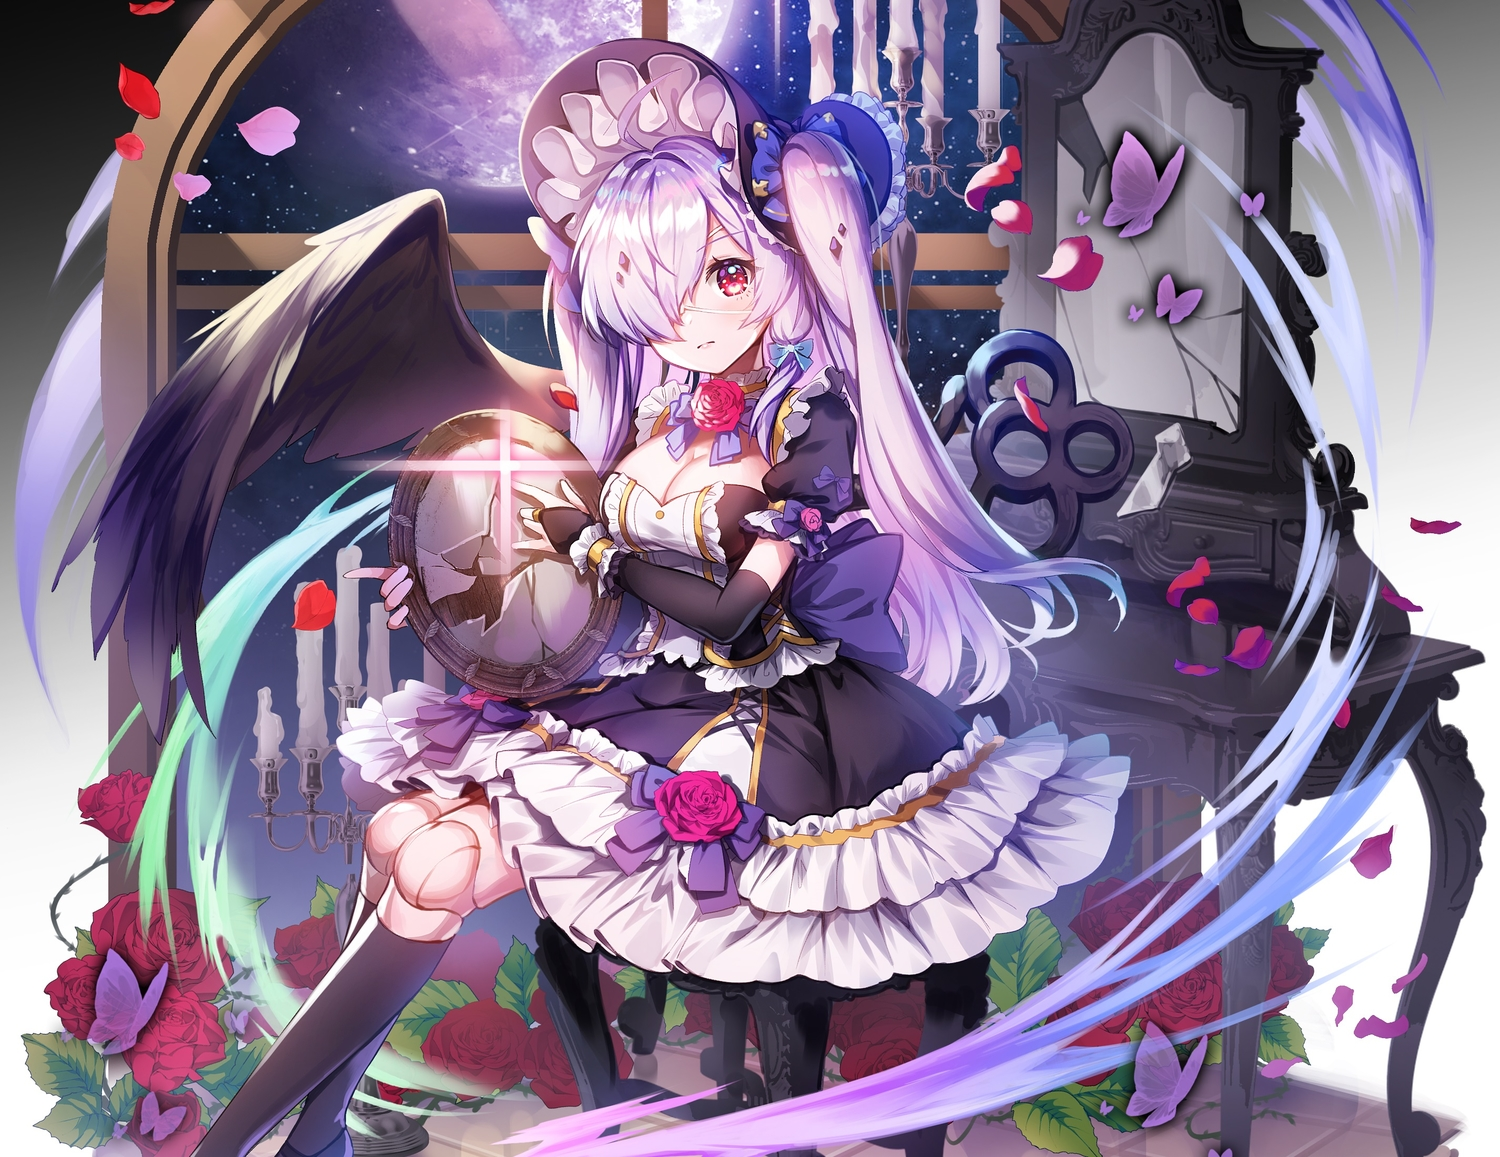 aliasing applecaramel_(acaramel) bow breasts butterfly cleavage cropped doll dress elbow_gloves eyepatch flowers gloves goth-loli gray_hair headdress kneehighs lolita_fashion long_hair mirror original petals red_eyes rose twintails wings